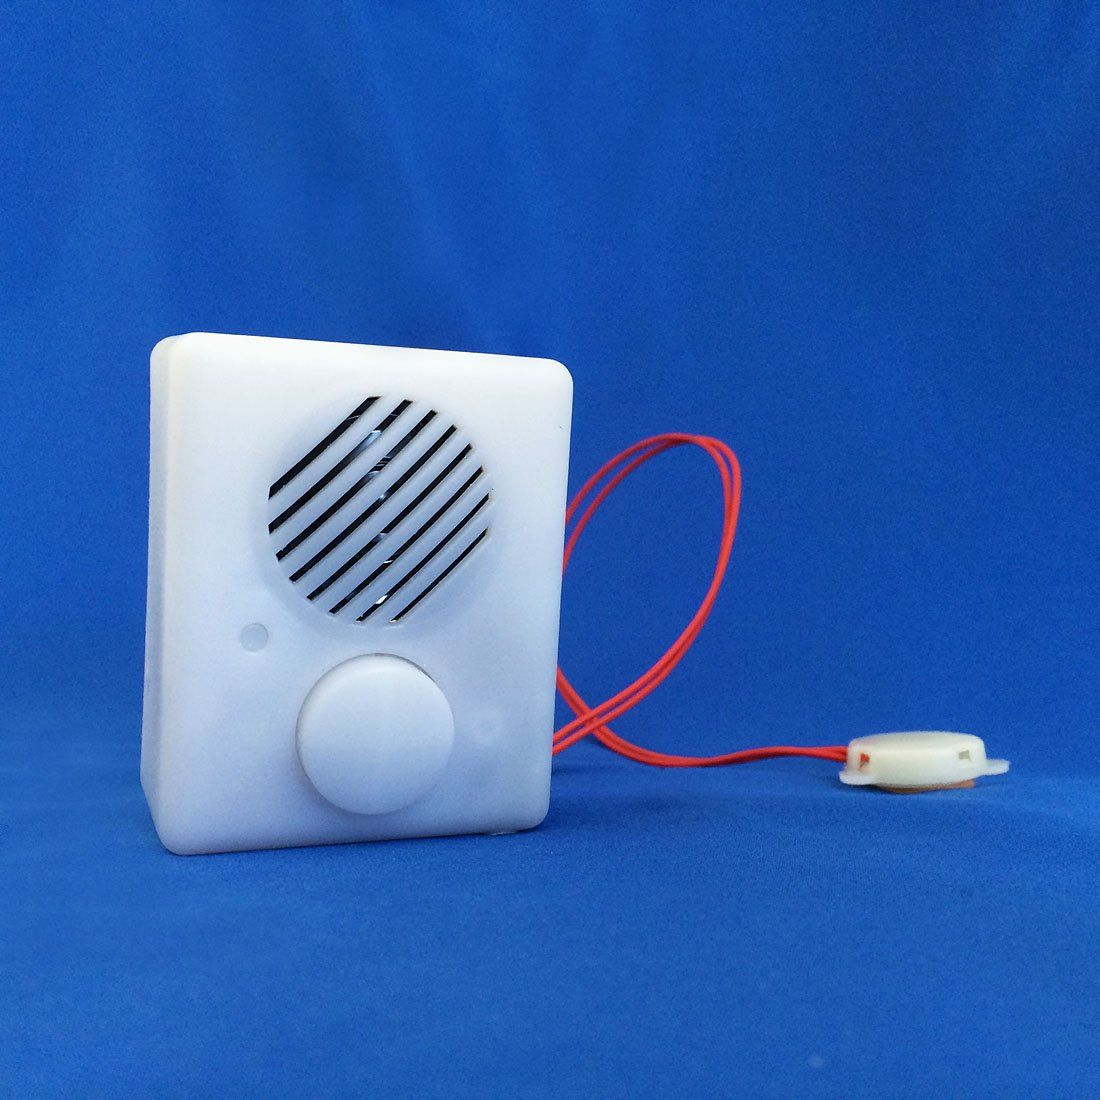 Easily Re-recordable Sound Box Module for Stuffed Animal